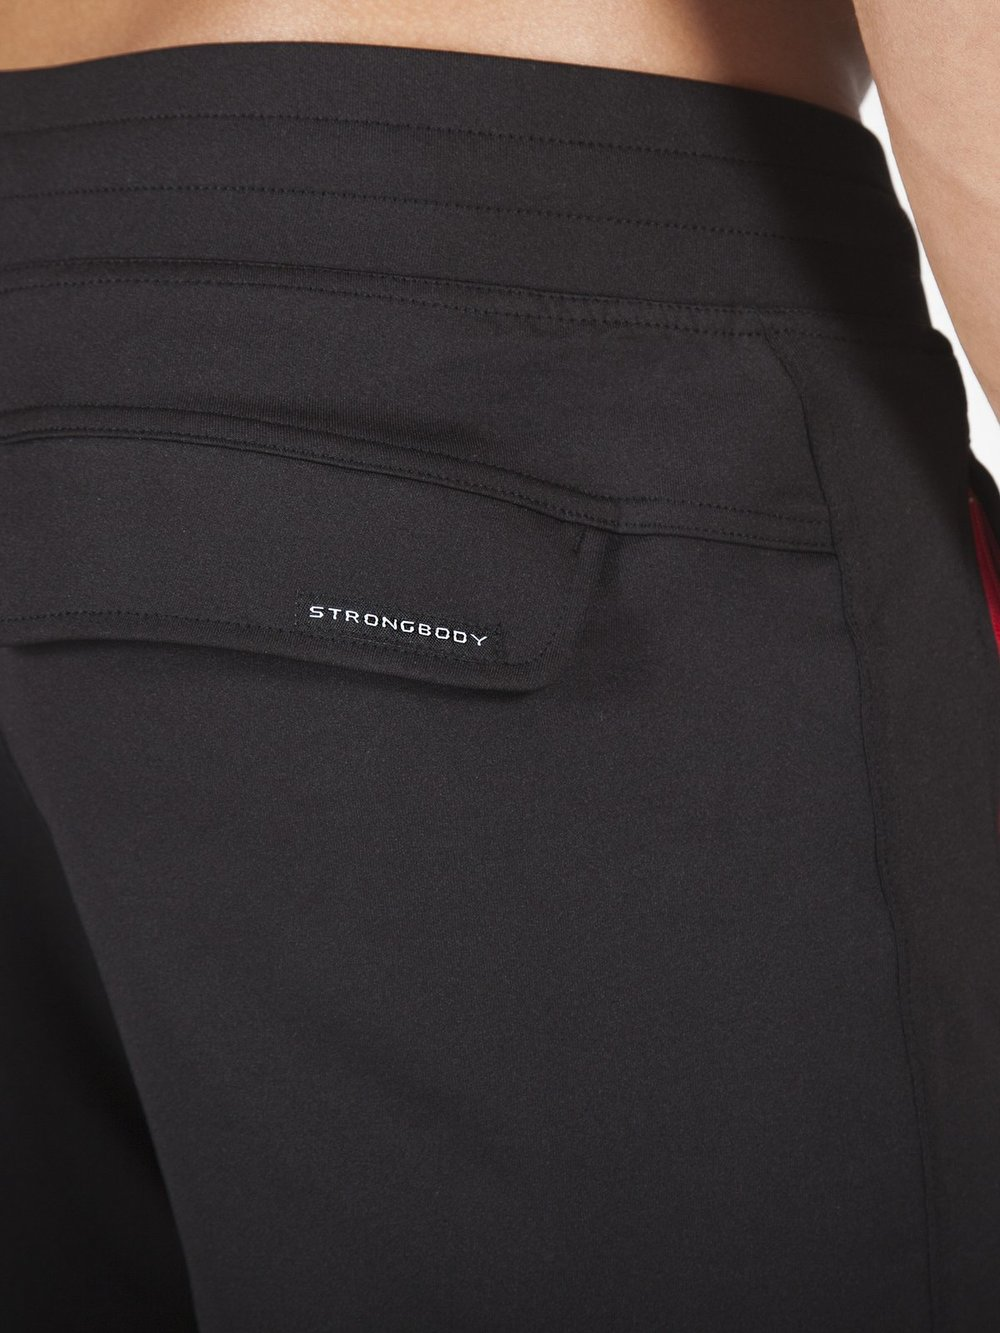 pocket_detail_shorts_1200x.jpg